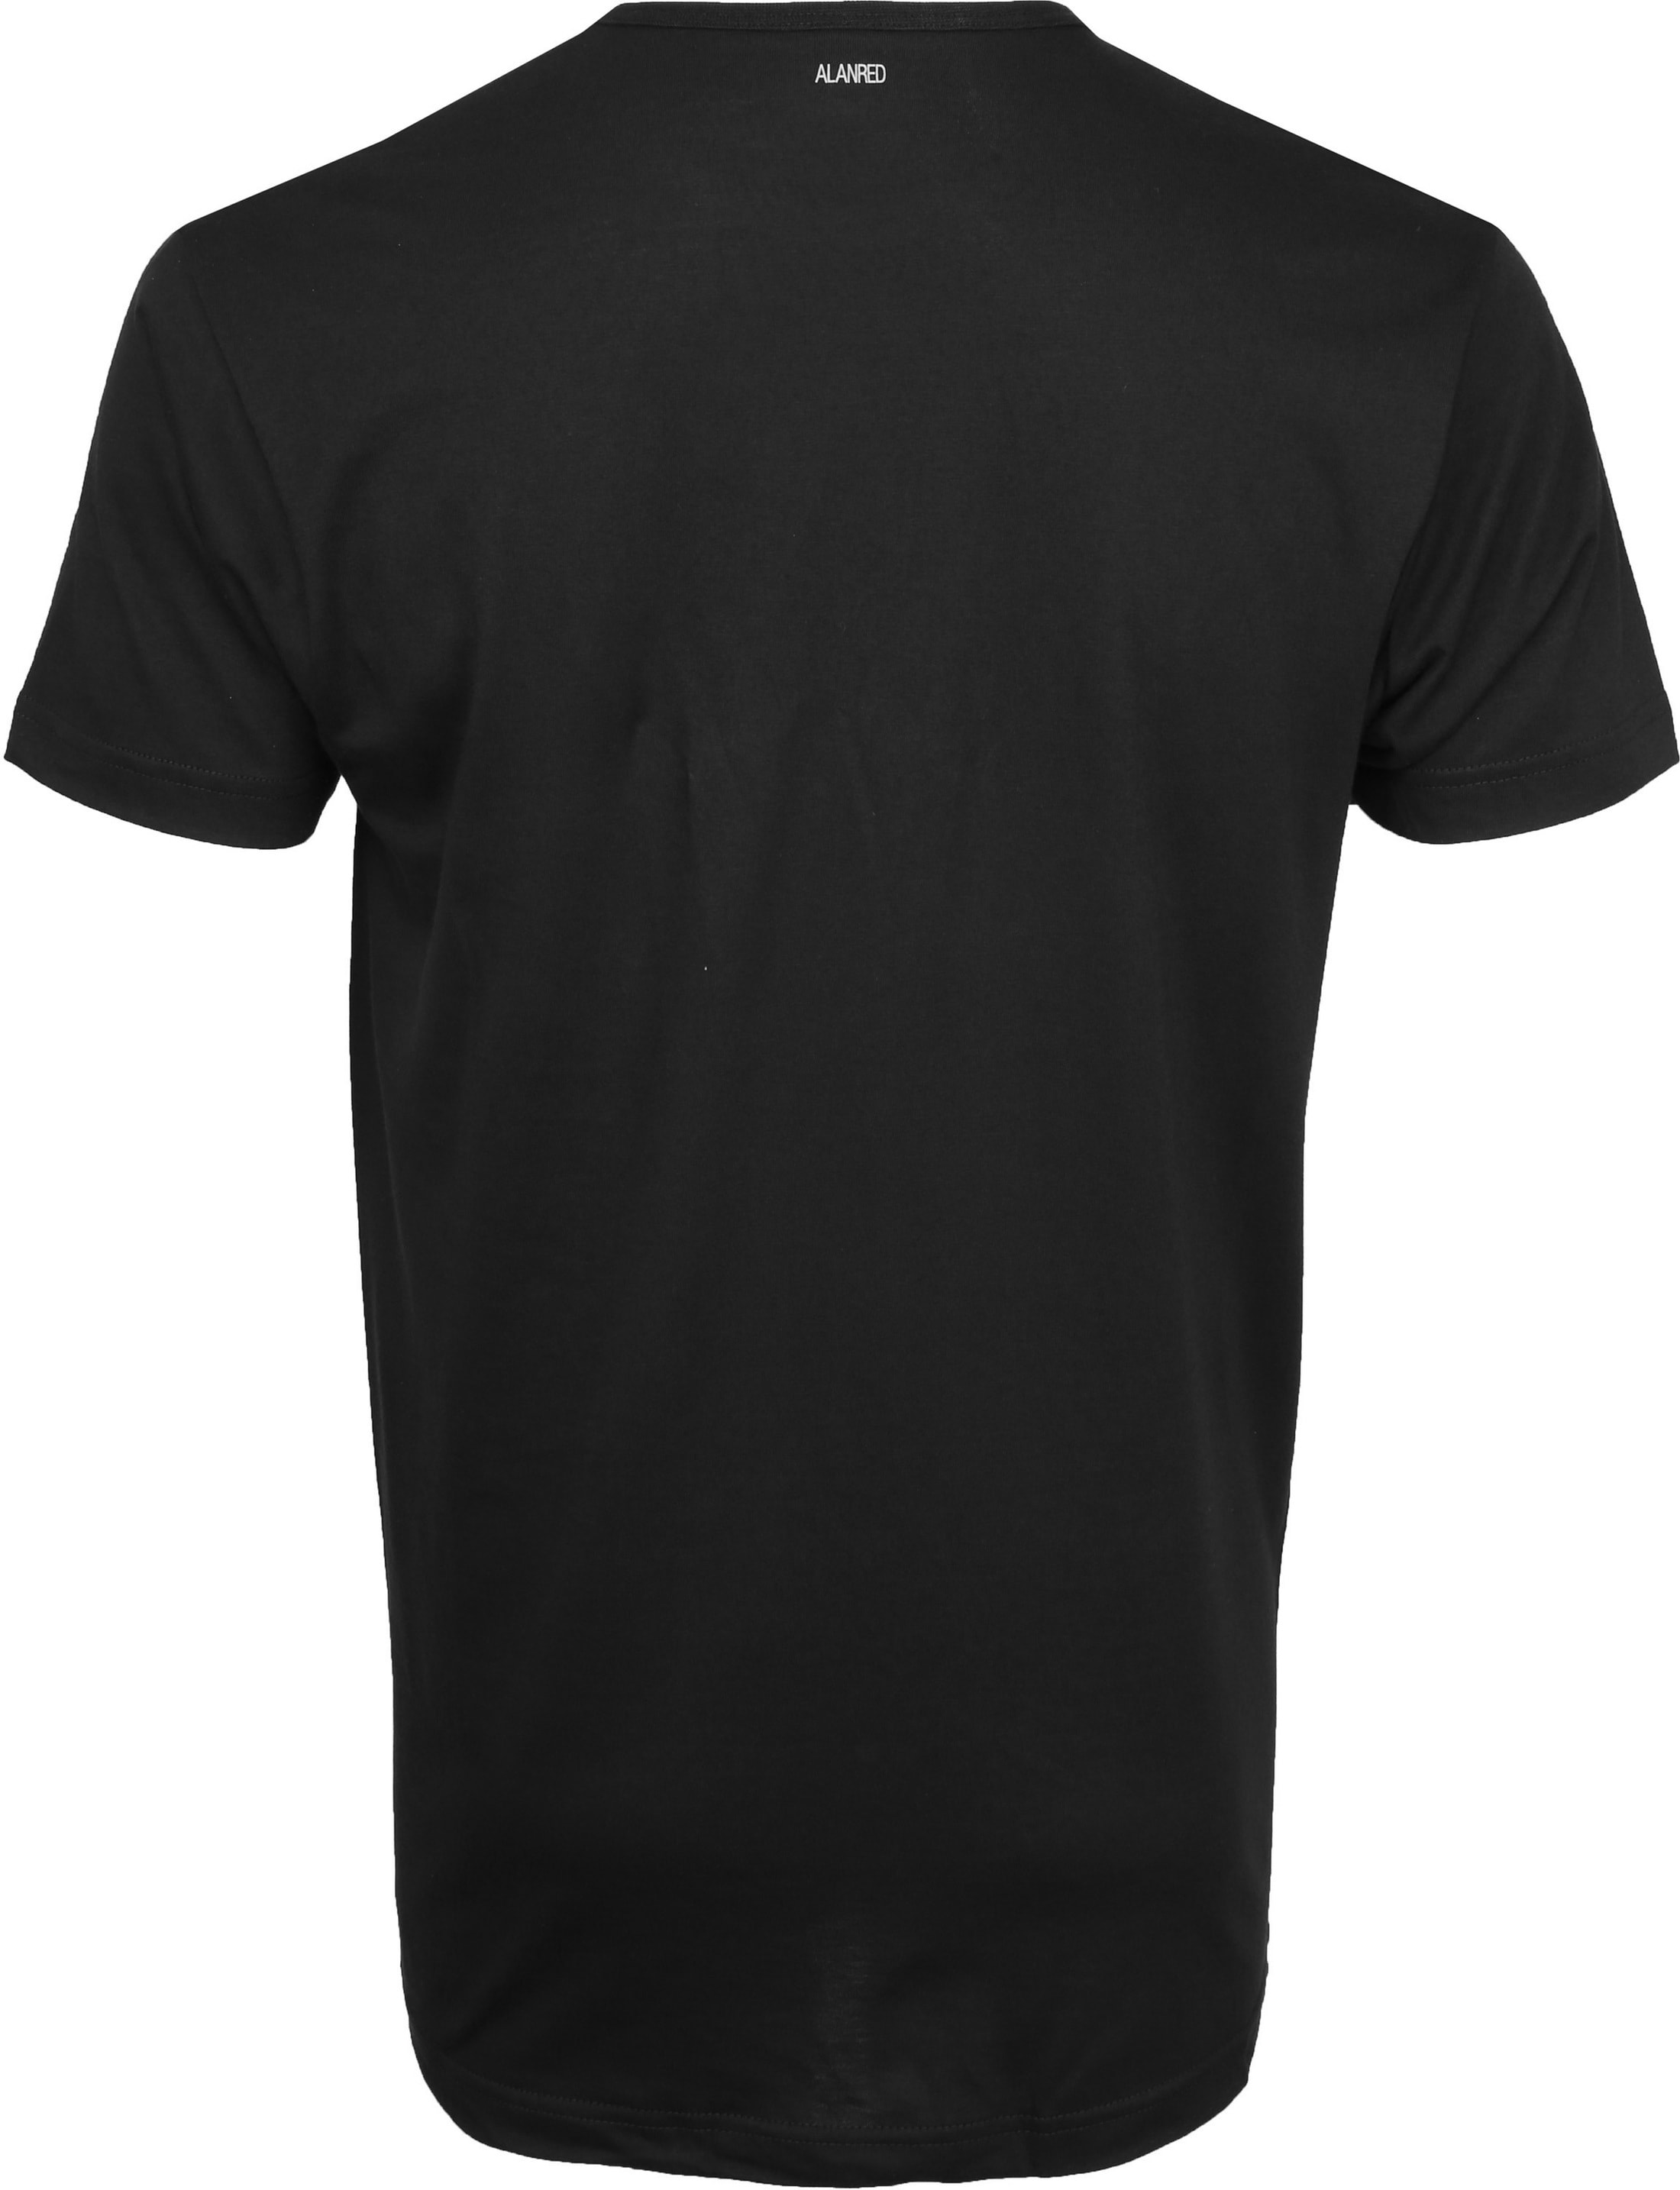 Alan Red Derby O-Neck T-Shirt Black (2Pack) foto 4